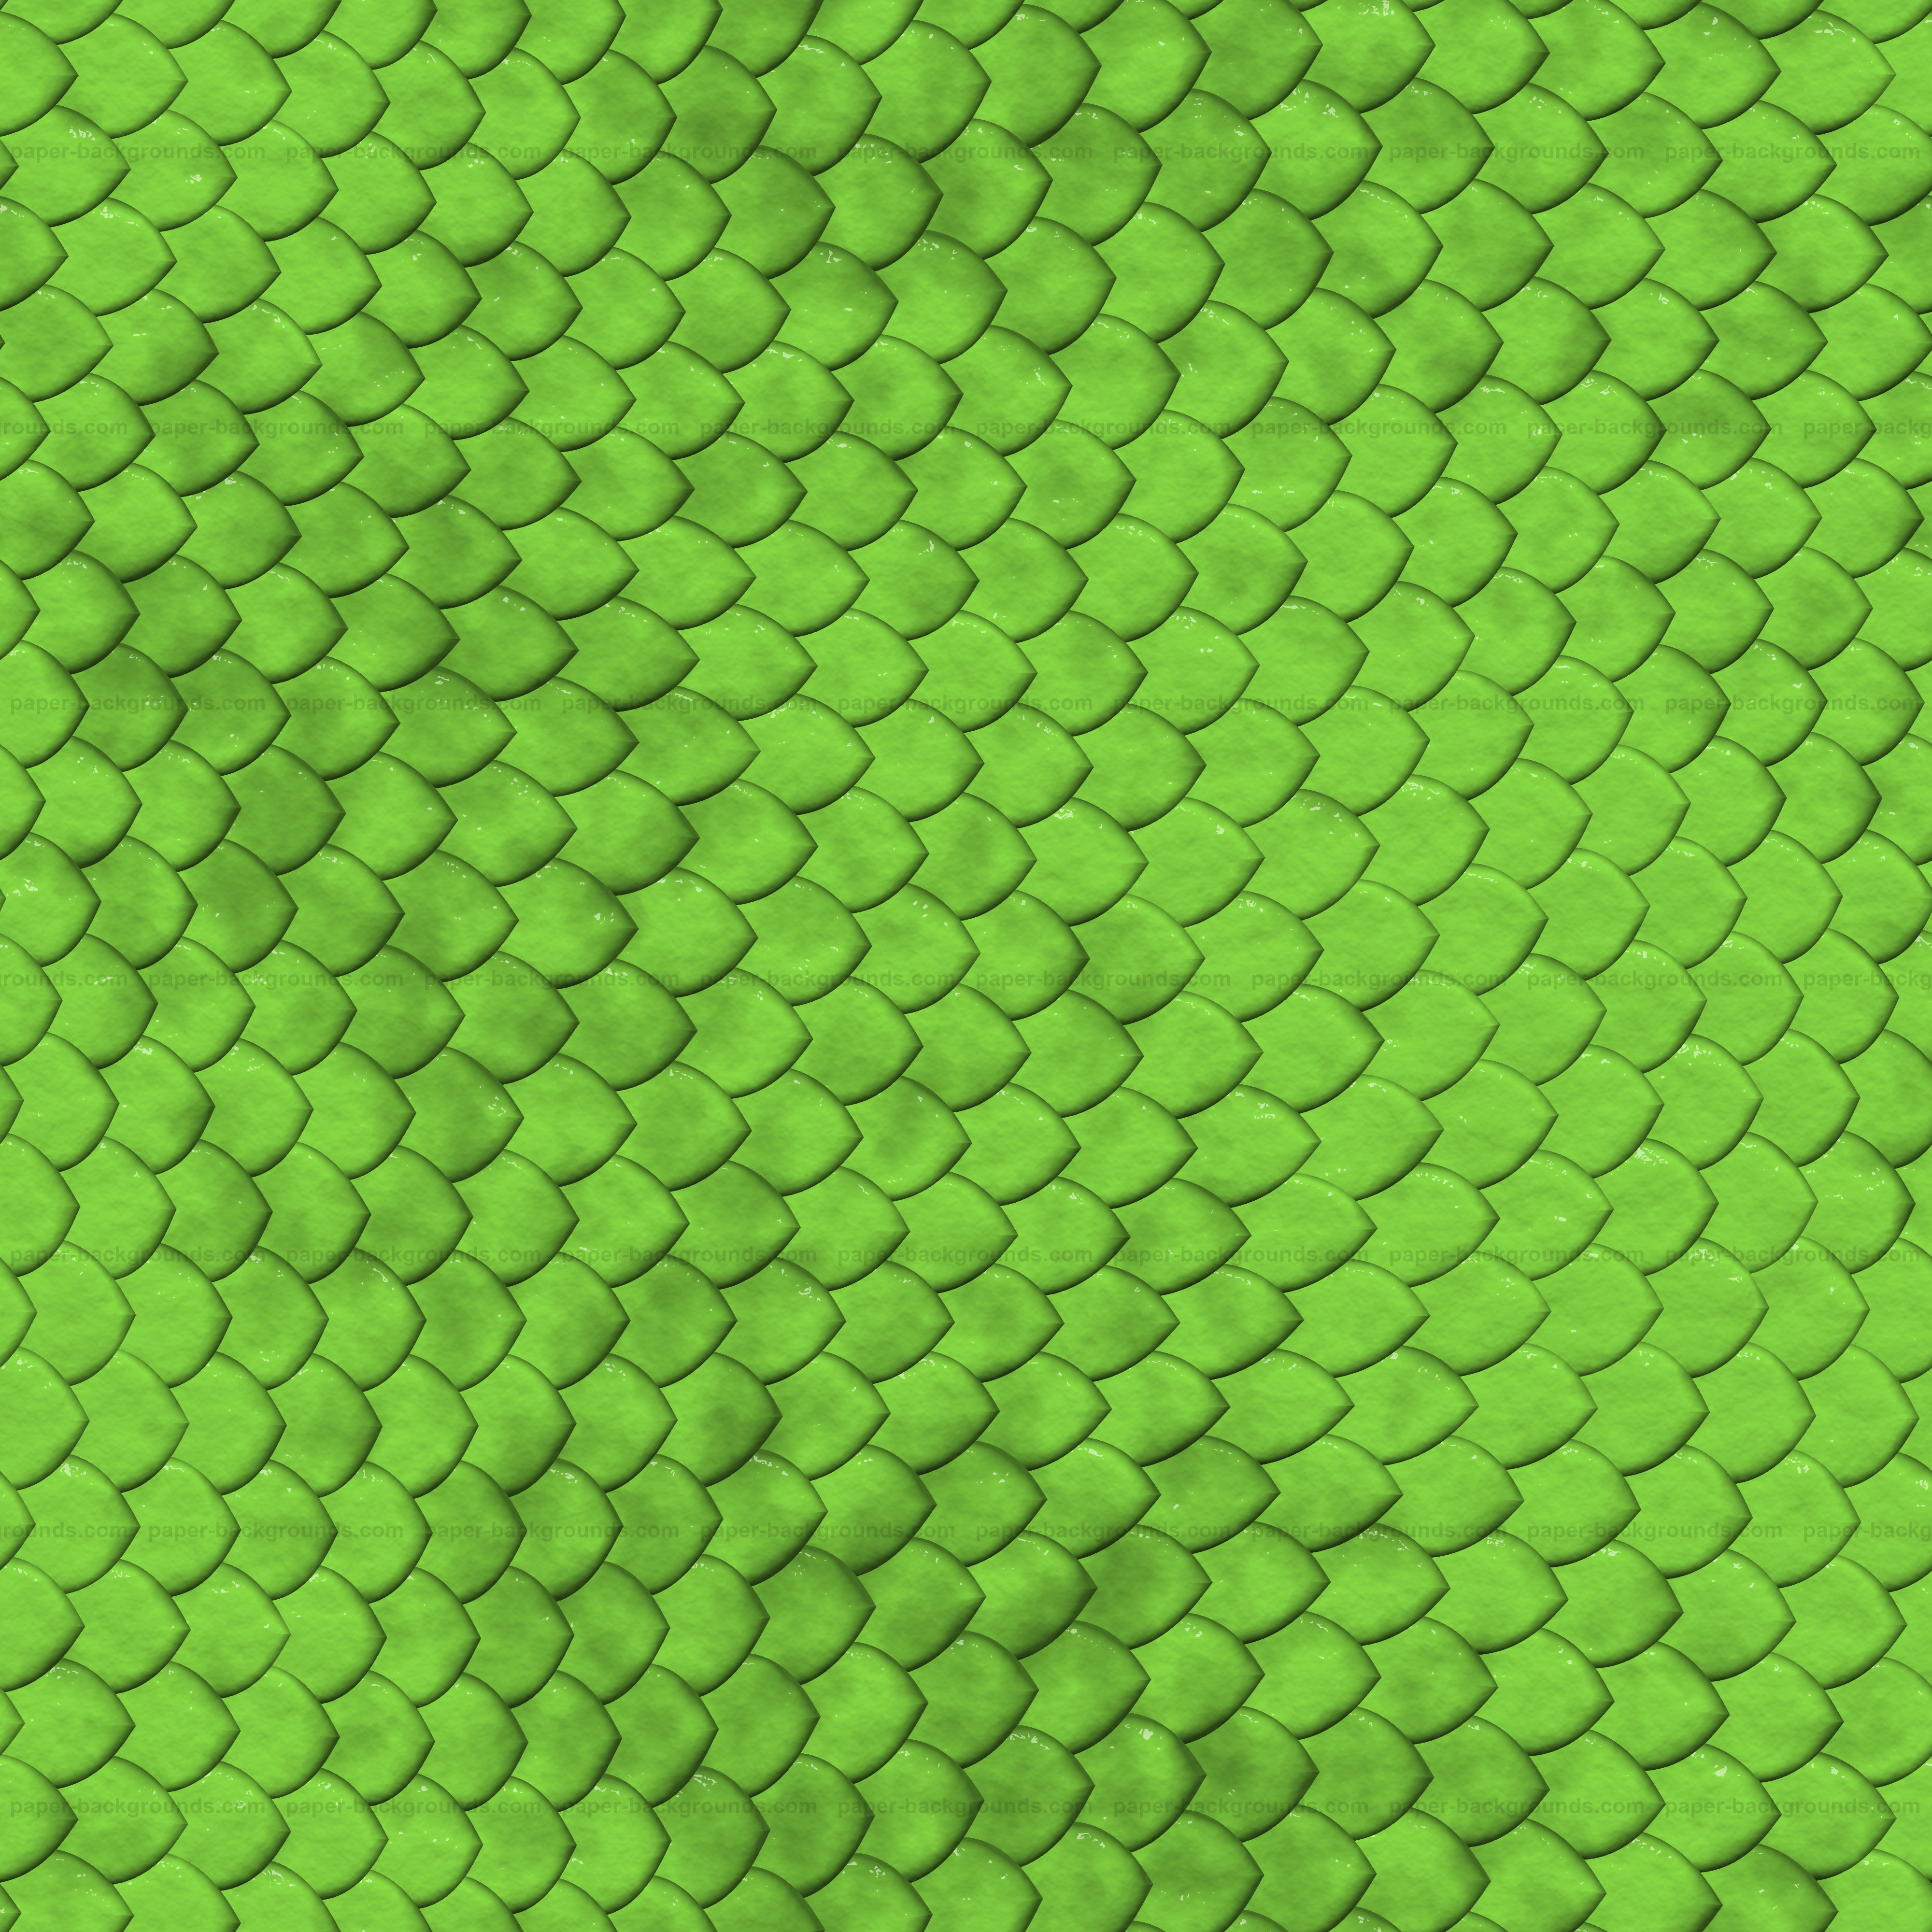 snake texture choice image